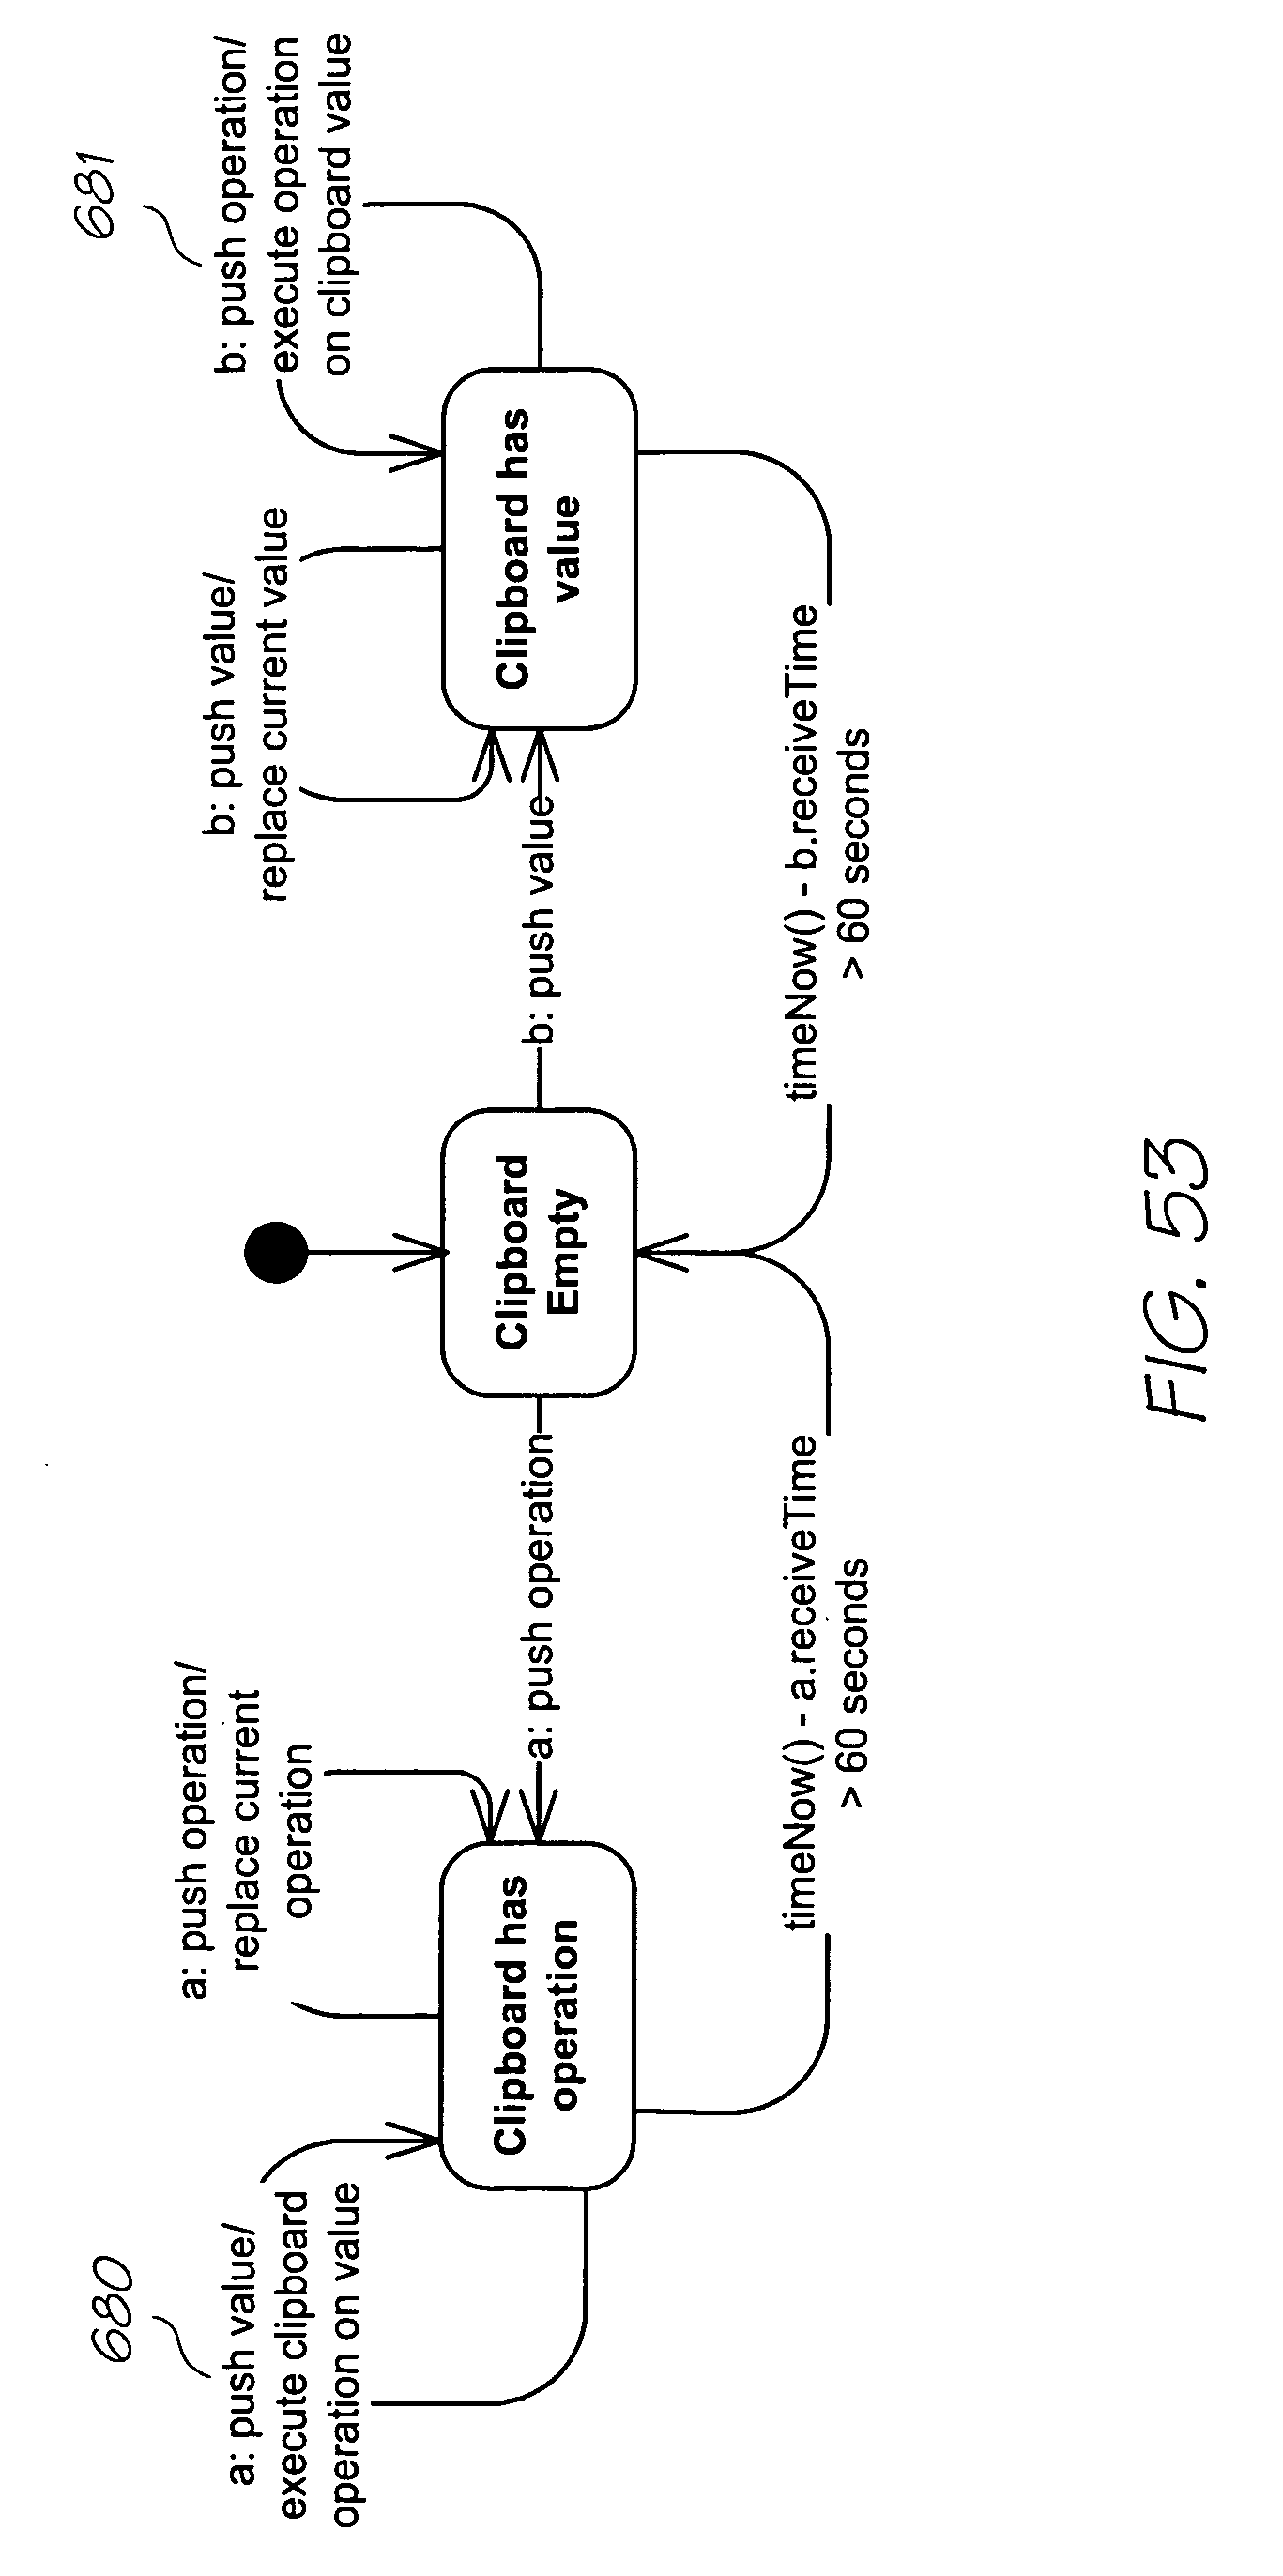 Patent Us 7991493 B2 By The Letter M In Ladder Logic Diagrams Continuous Motor Operation Images